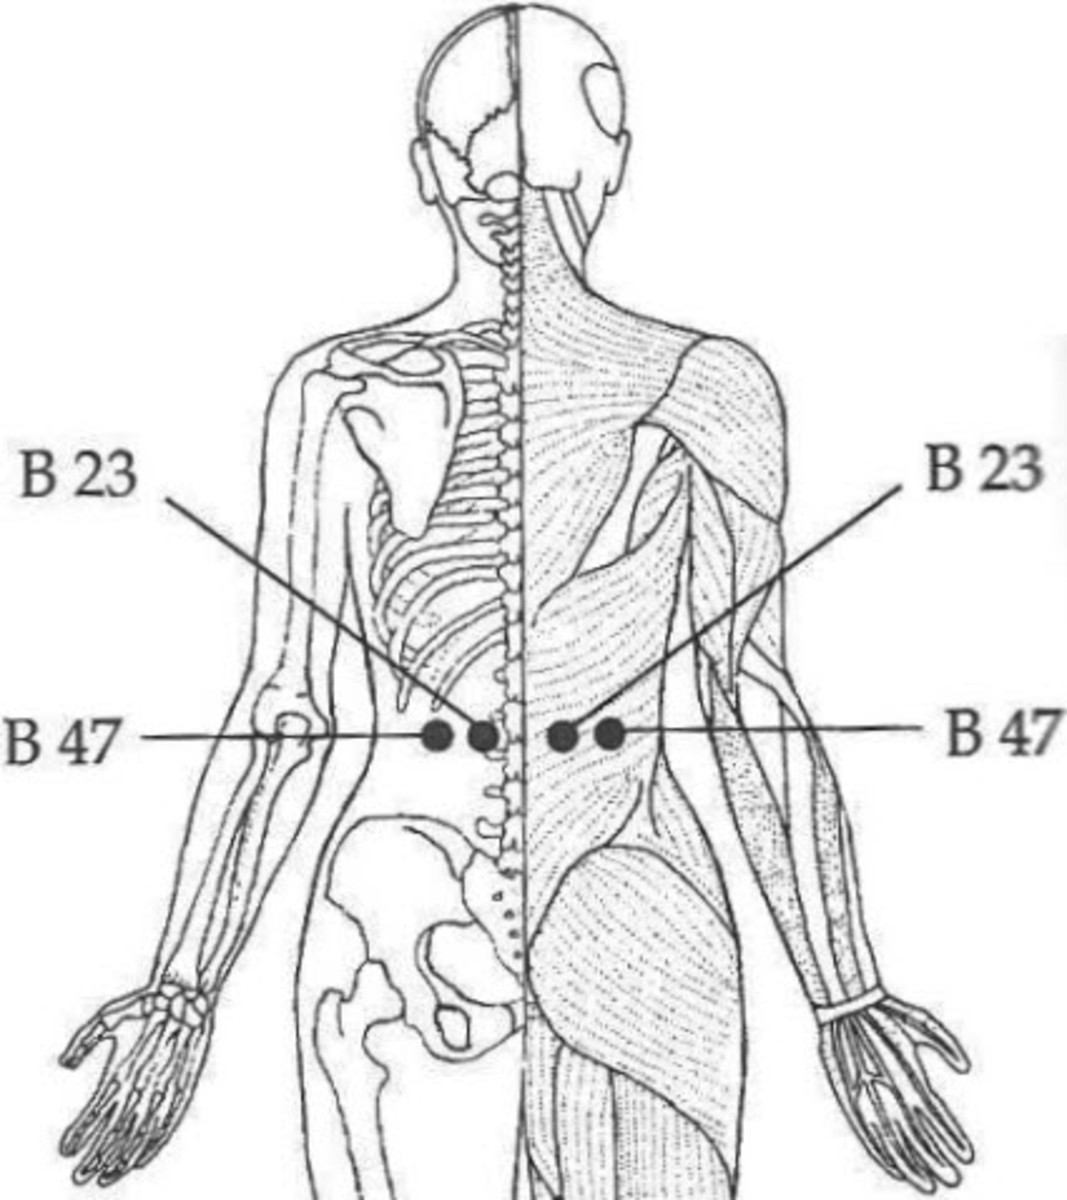 Associated Point of Kidney B23